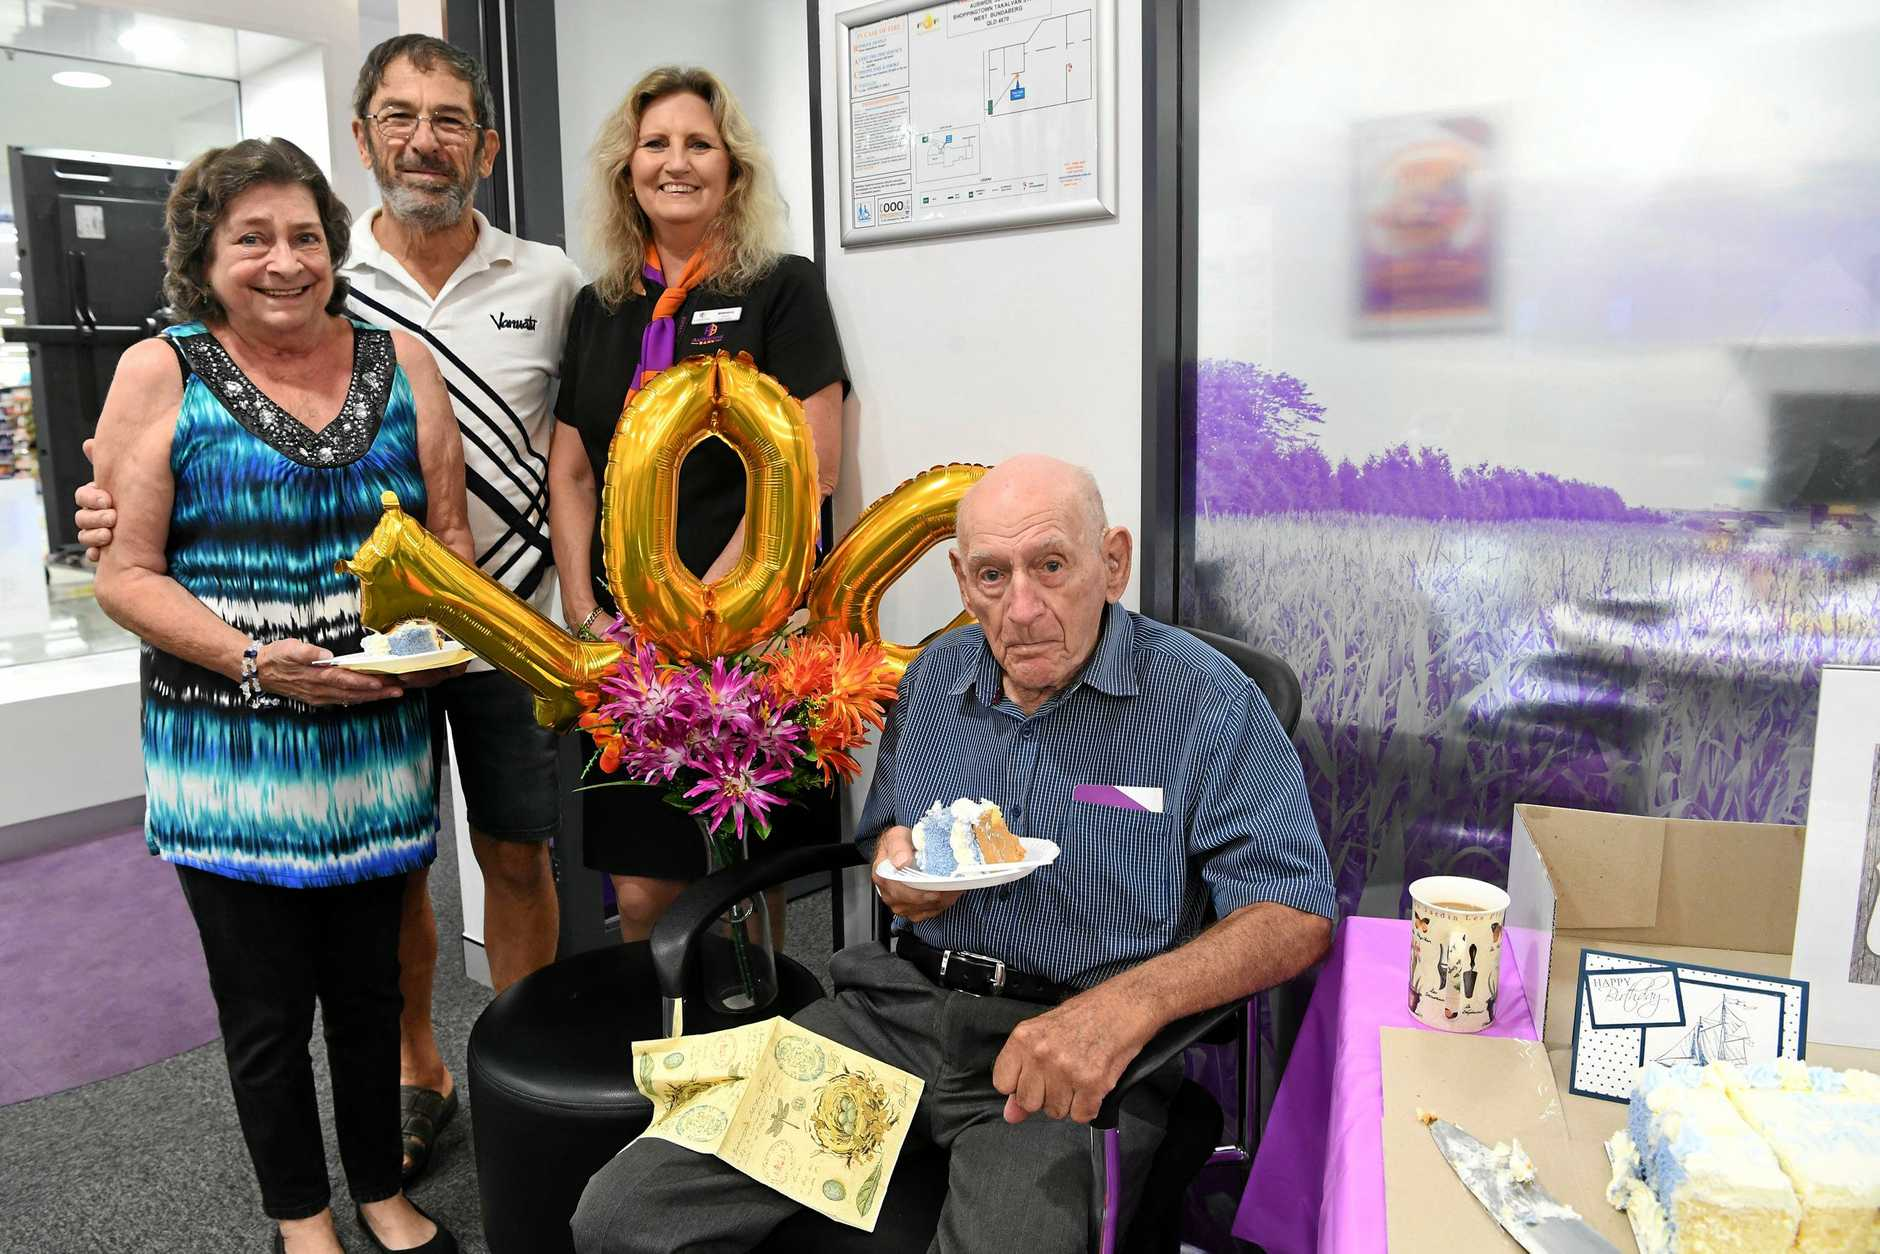 Jack Sulsters celebrating his one hundredth birthday with Lydi Vancsa, Georg Vancsa and Brenda Meikle.